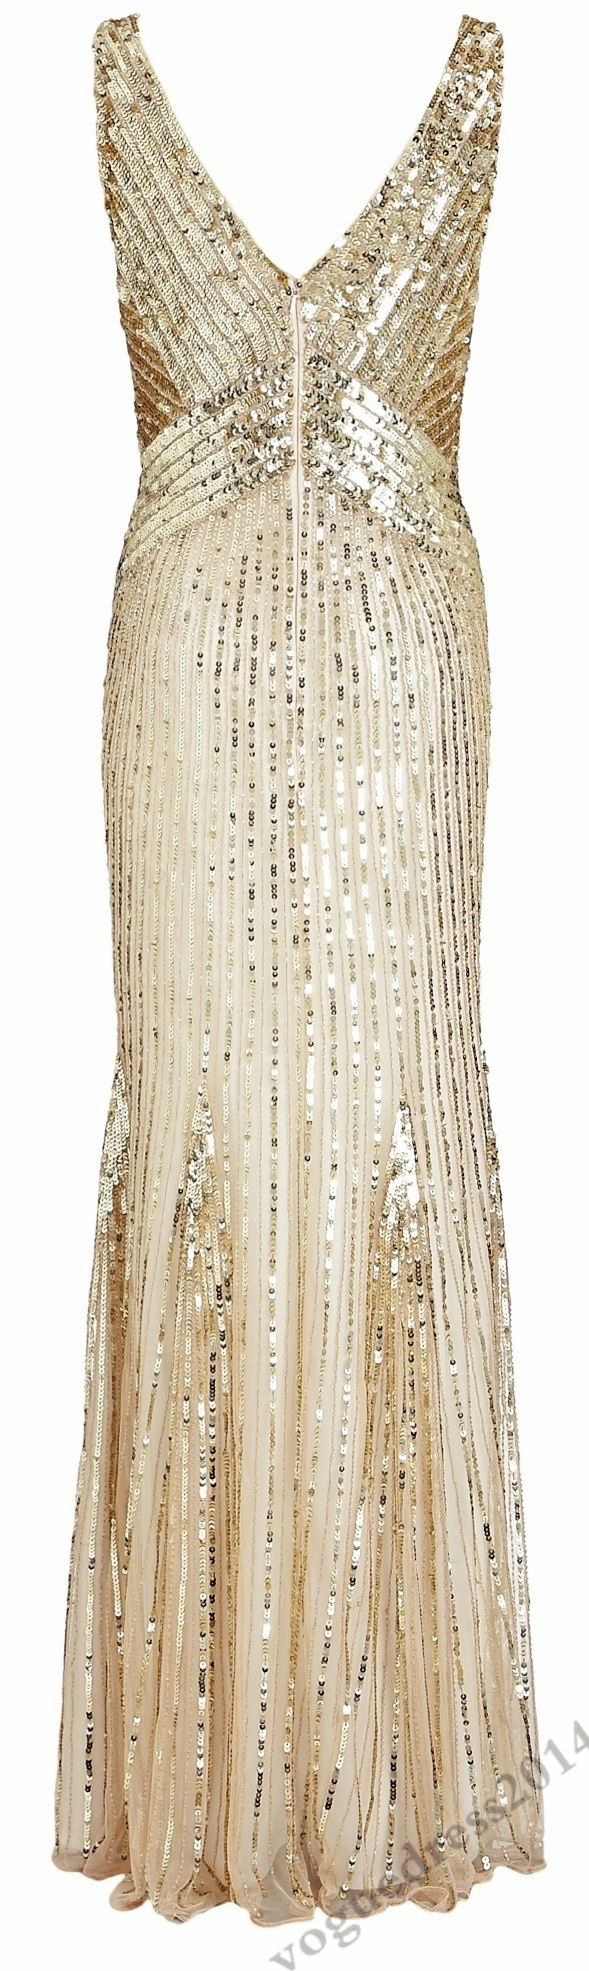 gold sequin dress, love this